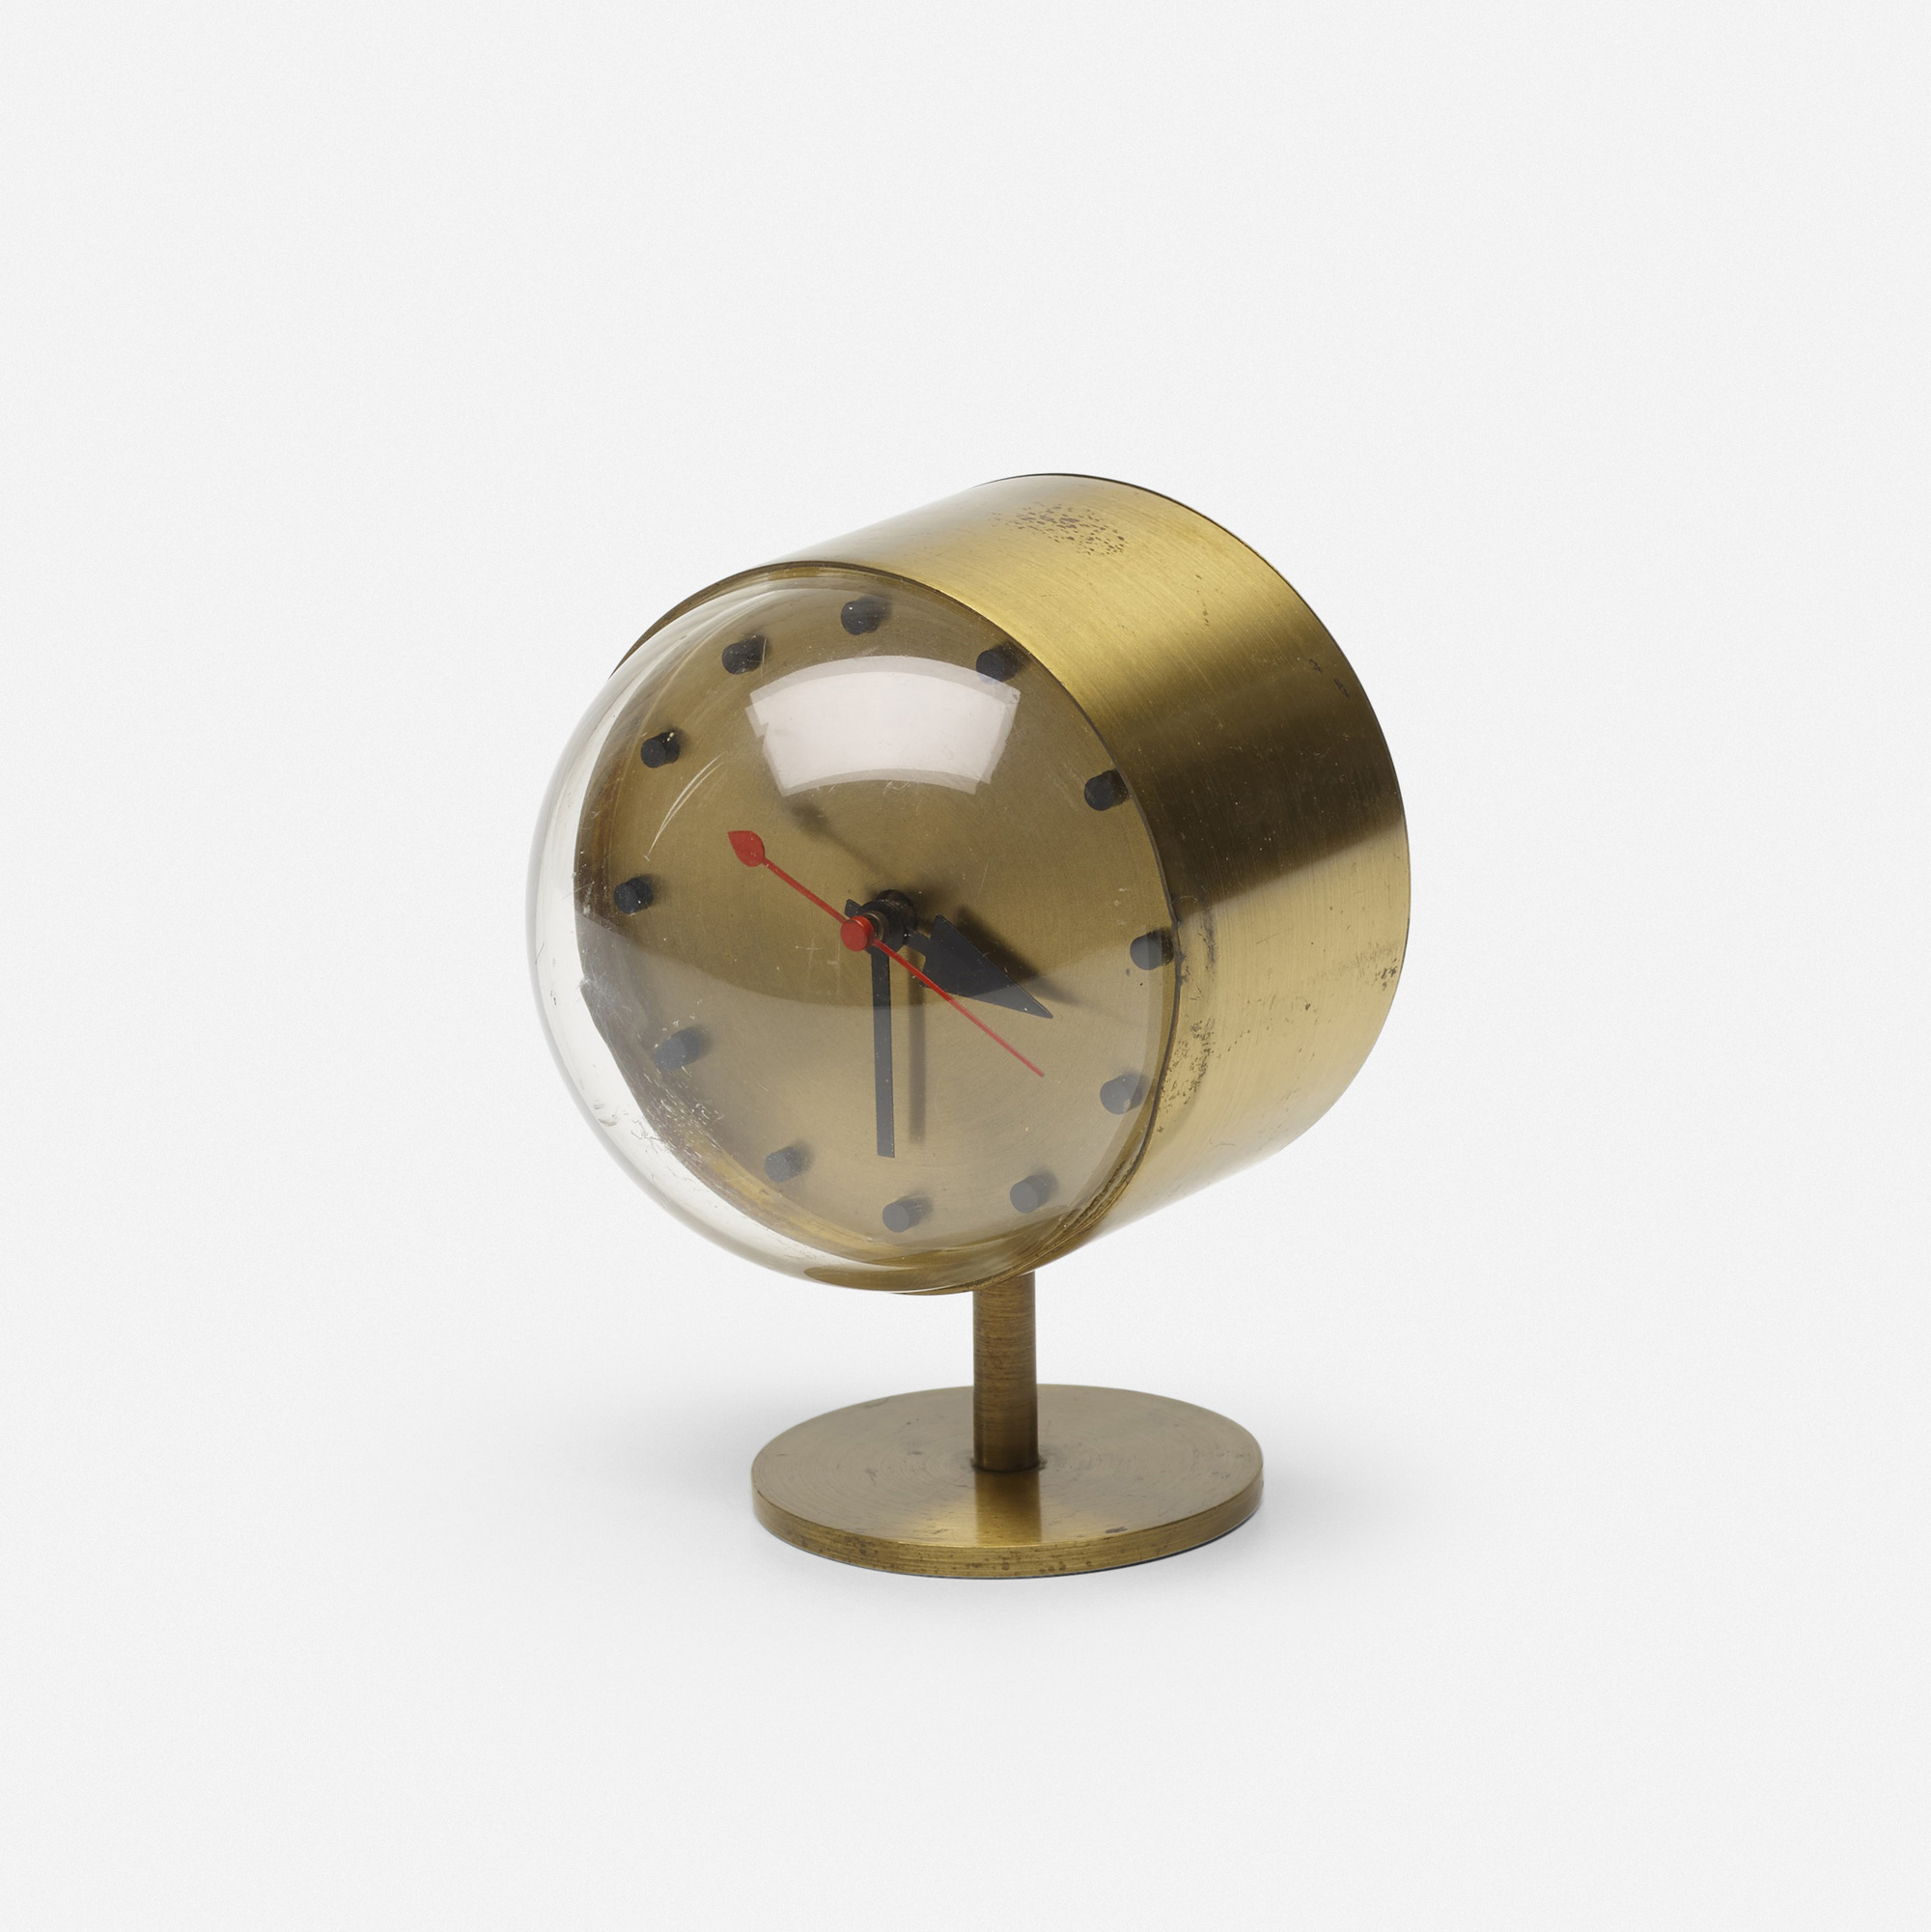 635: George Nelson & Associates / table clock, model 4766 (1 of 2)